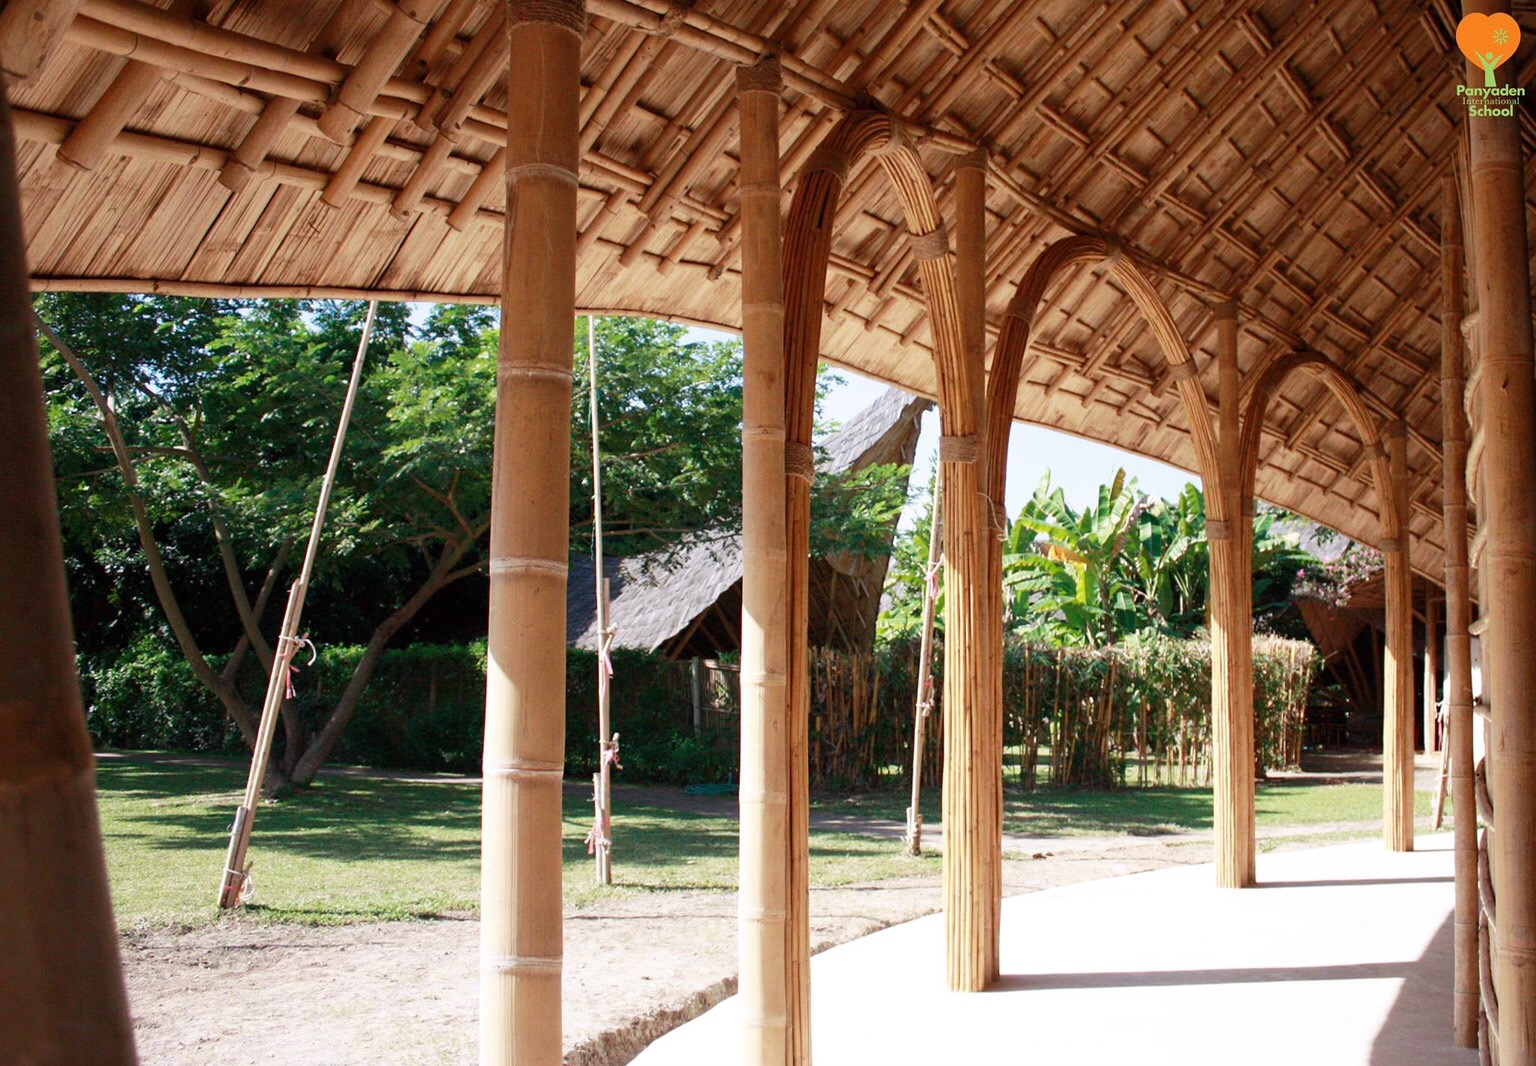 Panyaden-International-School-Sports-Hall-Bamboo-Architecture-88.jpg